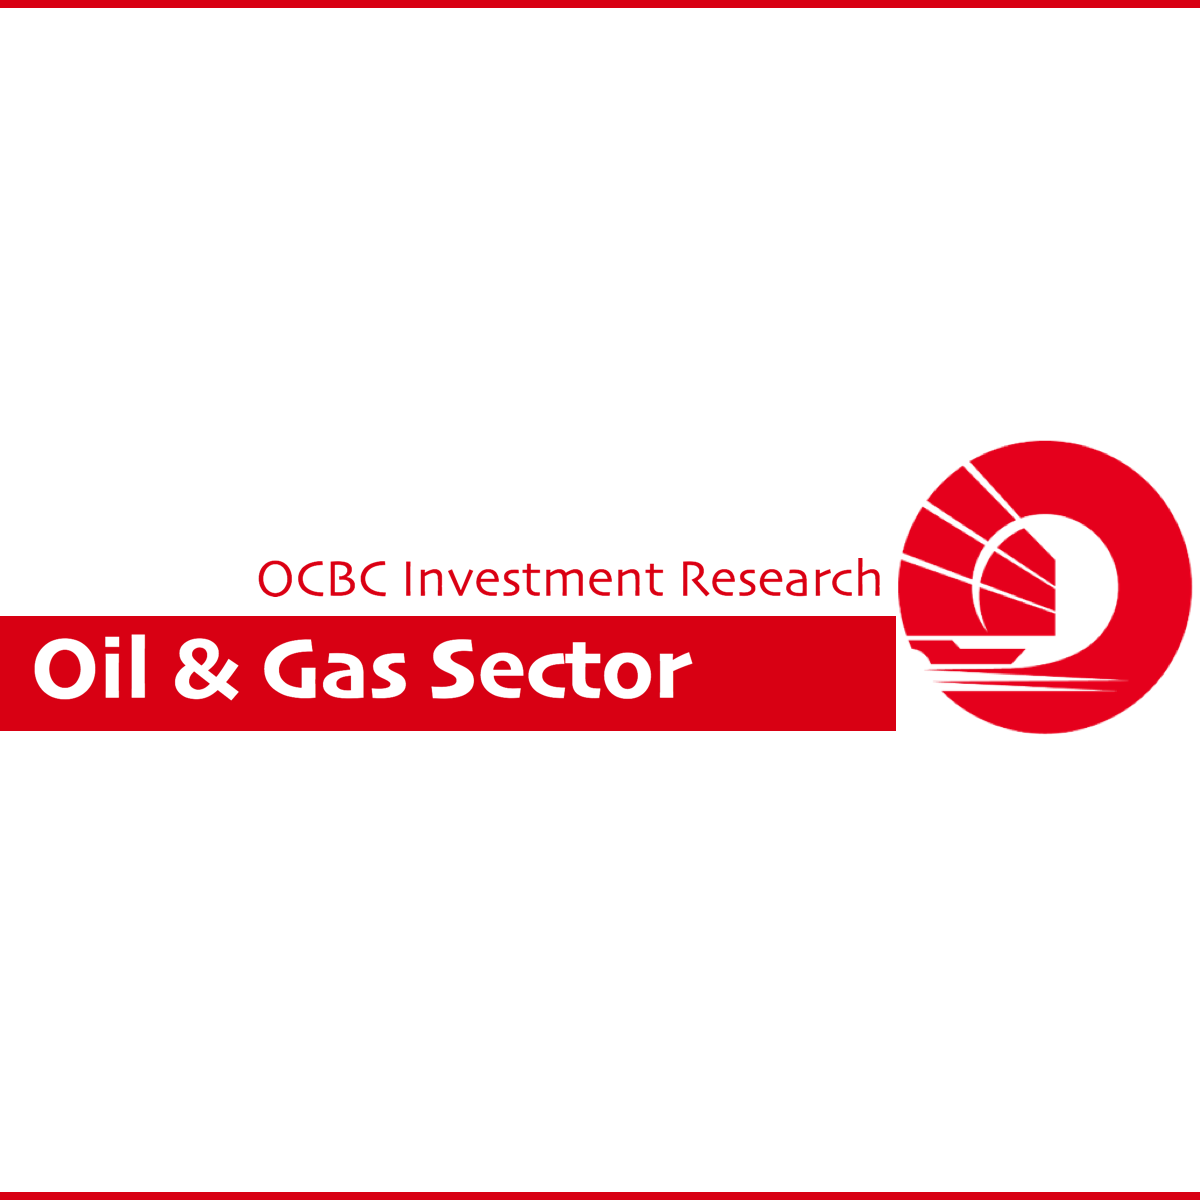 Oil & Gas Sector - OCBC Investment 2017-12-01: Awaiting Contract Wins